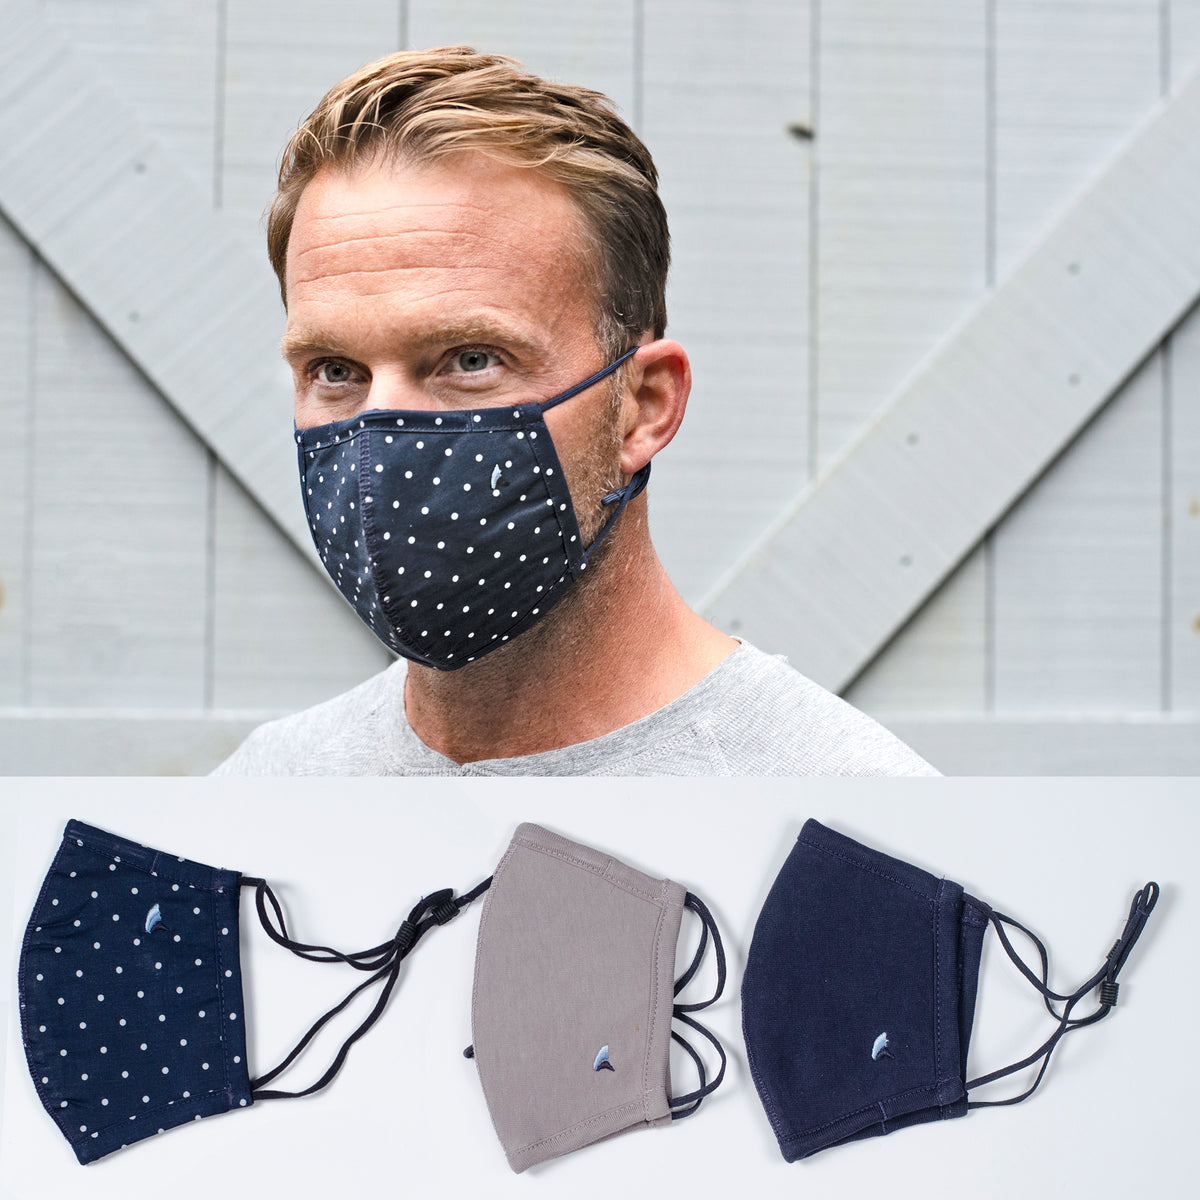 PUREtec cool® 3-Layer High Filtration Mask with Nanofiber Fiber Filter- 3 pack(Navy Blazer Mini Dots/Navy/Gray)